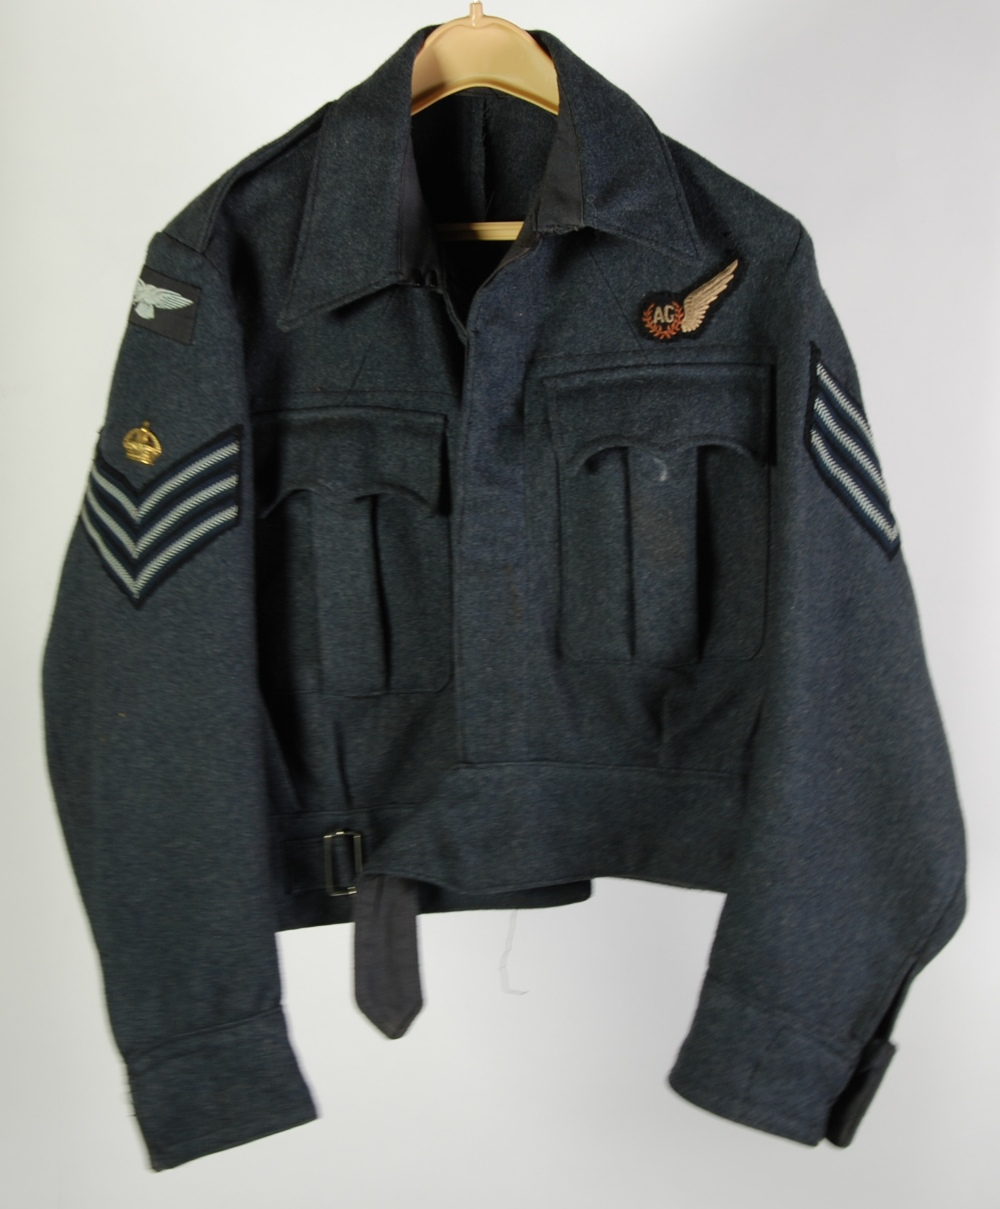 A CIRCA 1943 R.A.F WWII SERGEANTS BLUE SERGE FABRIC `BLOUSE` JACKET, with applied sergeants rank